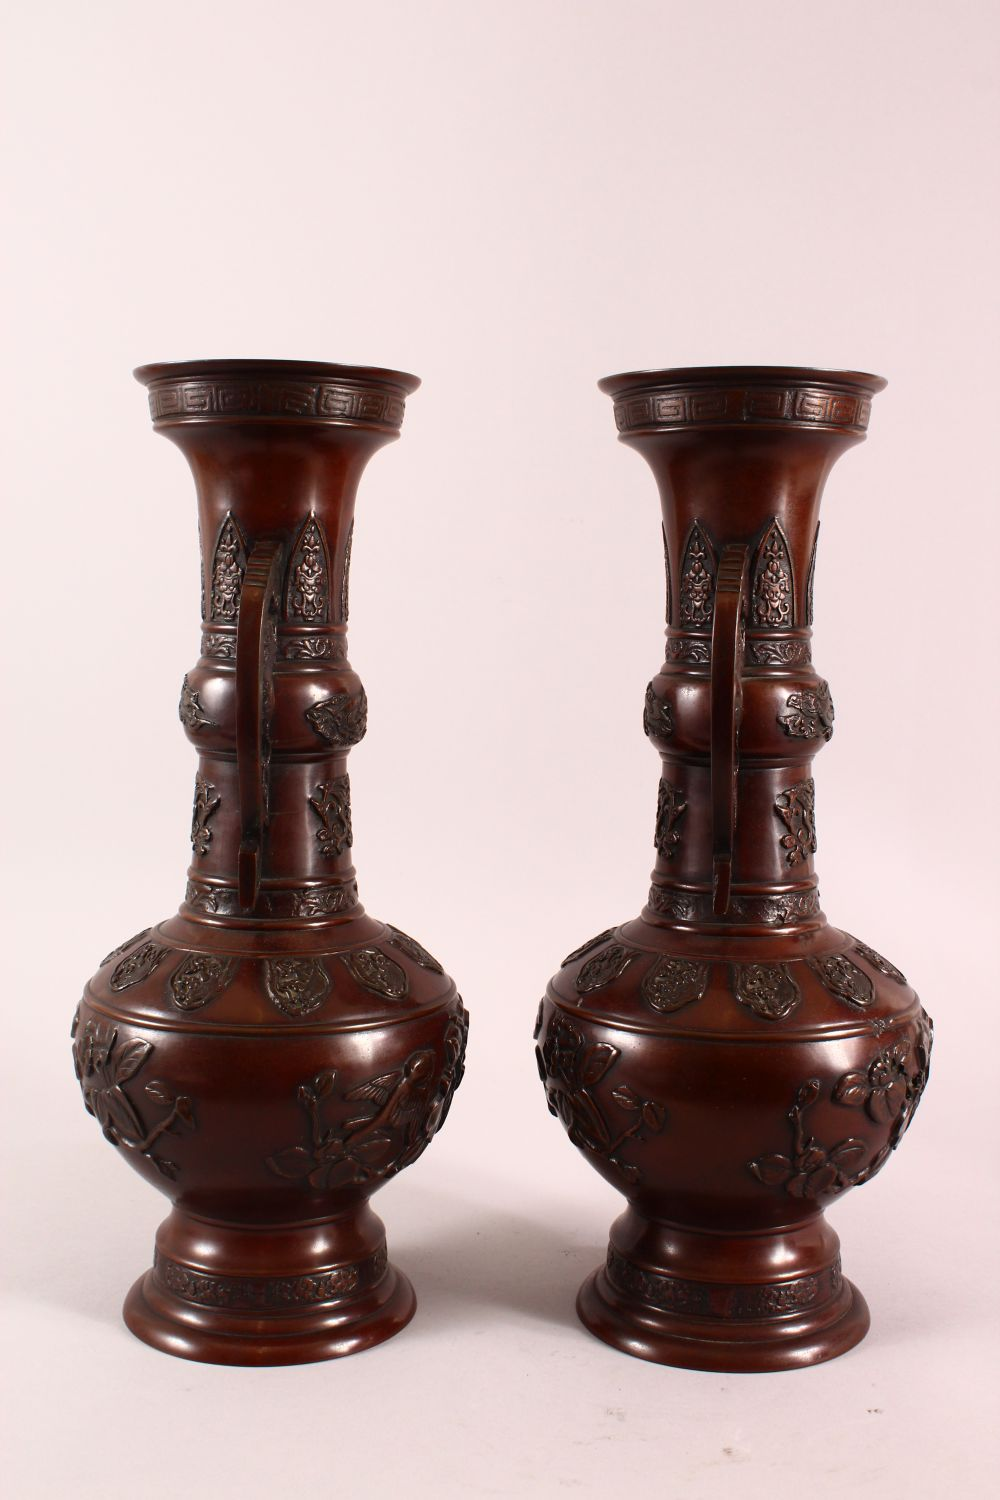 A PAIR OF JAPANESE RELIEF BRONZE VASES, with twin handles, relief birds and flora decoration, 40cm - Image 6 of 7